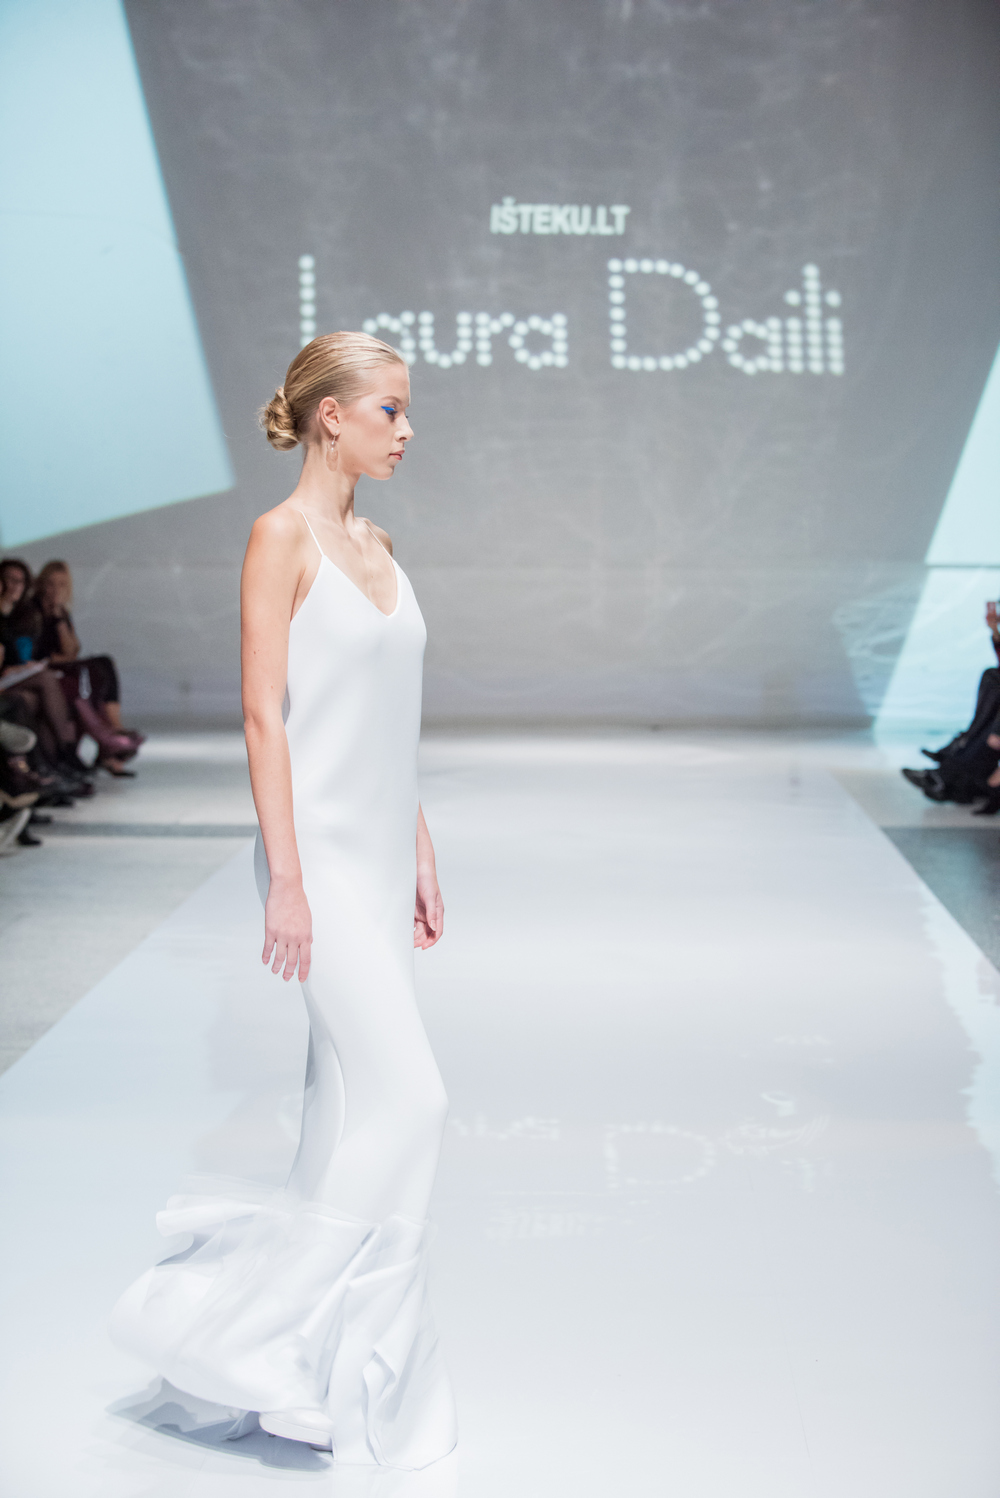 Laura Daili Bridal Collection 2017 Isteku lt (26)